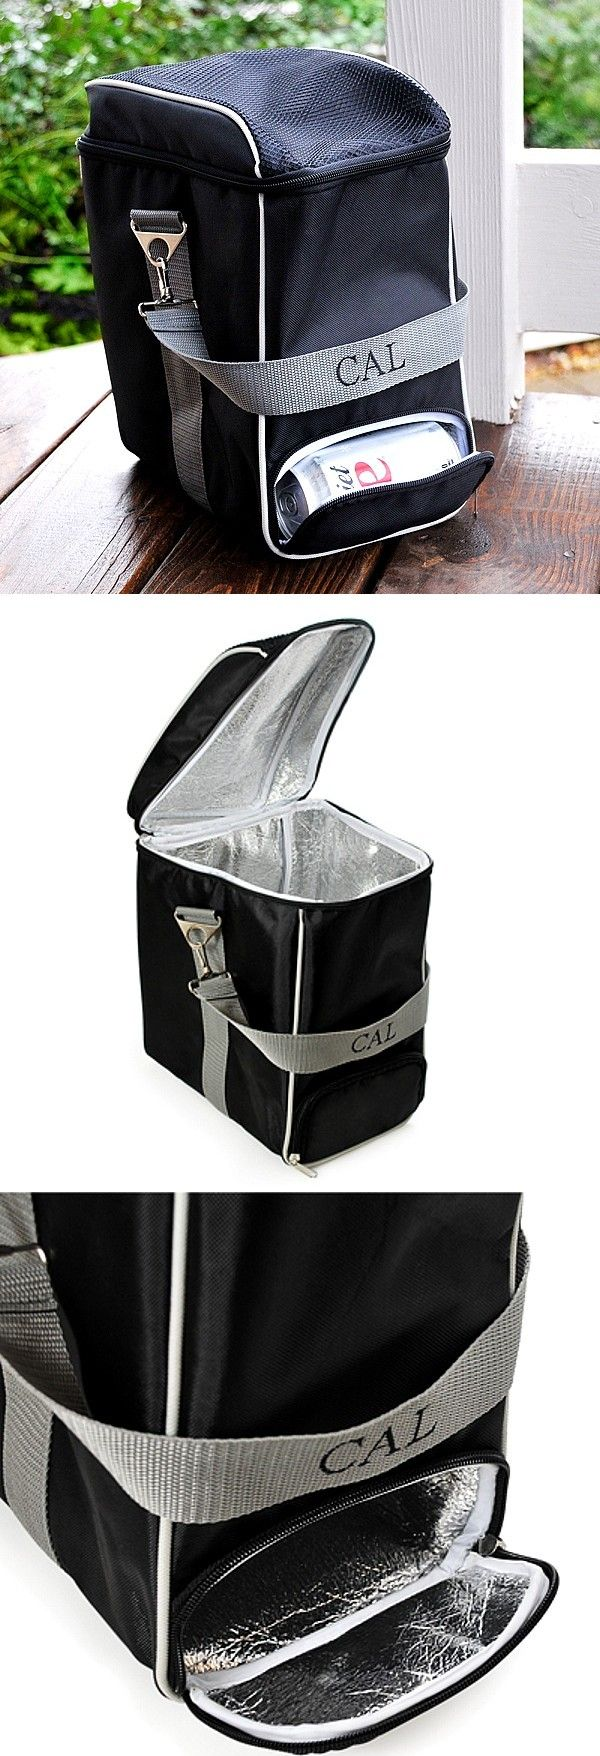 Light and collapsible, this insulated soft sided travel cooler personalized with a name or initials will hold up to twelve 12 ounce cans of beer or soda with ice and features a zippered opening at the bottom for dispensing a single can at a time without opening the top and letting all the cold out. A useful gift idea men and women alike will appreciate. This travel cooler can be ordered at http://myweddingreceptionideas.com/personalized-tailgate-can-dispenser-cooler.asp